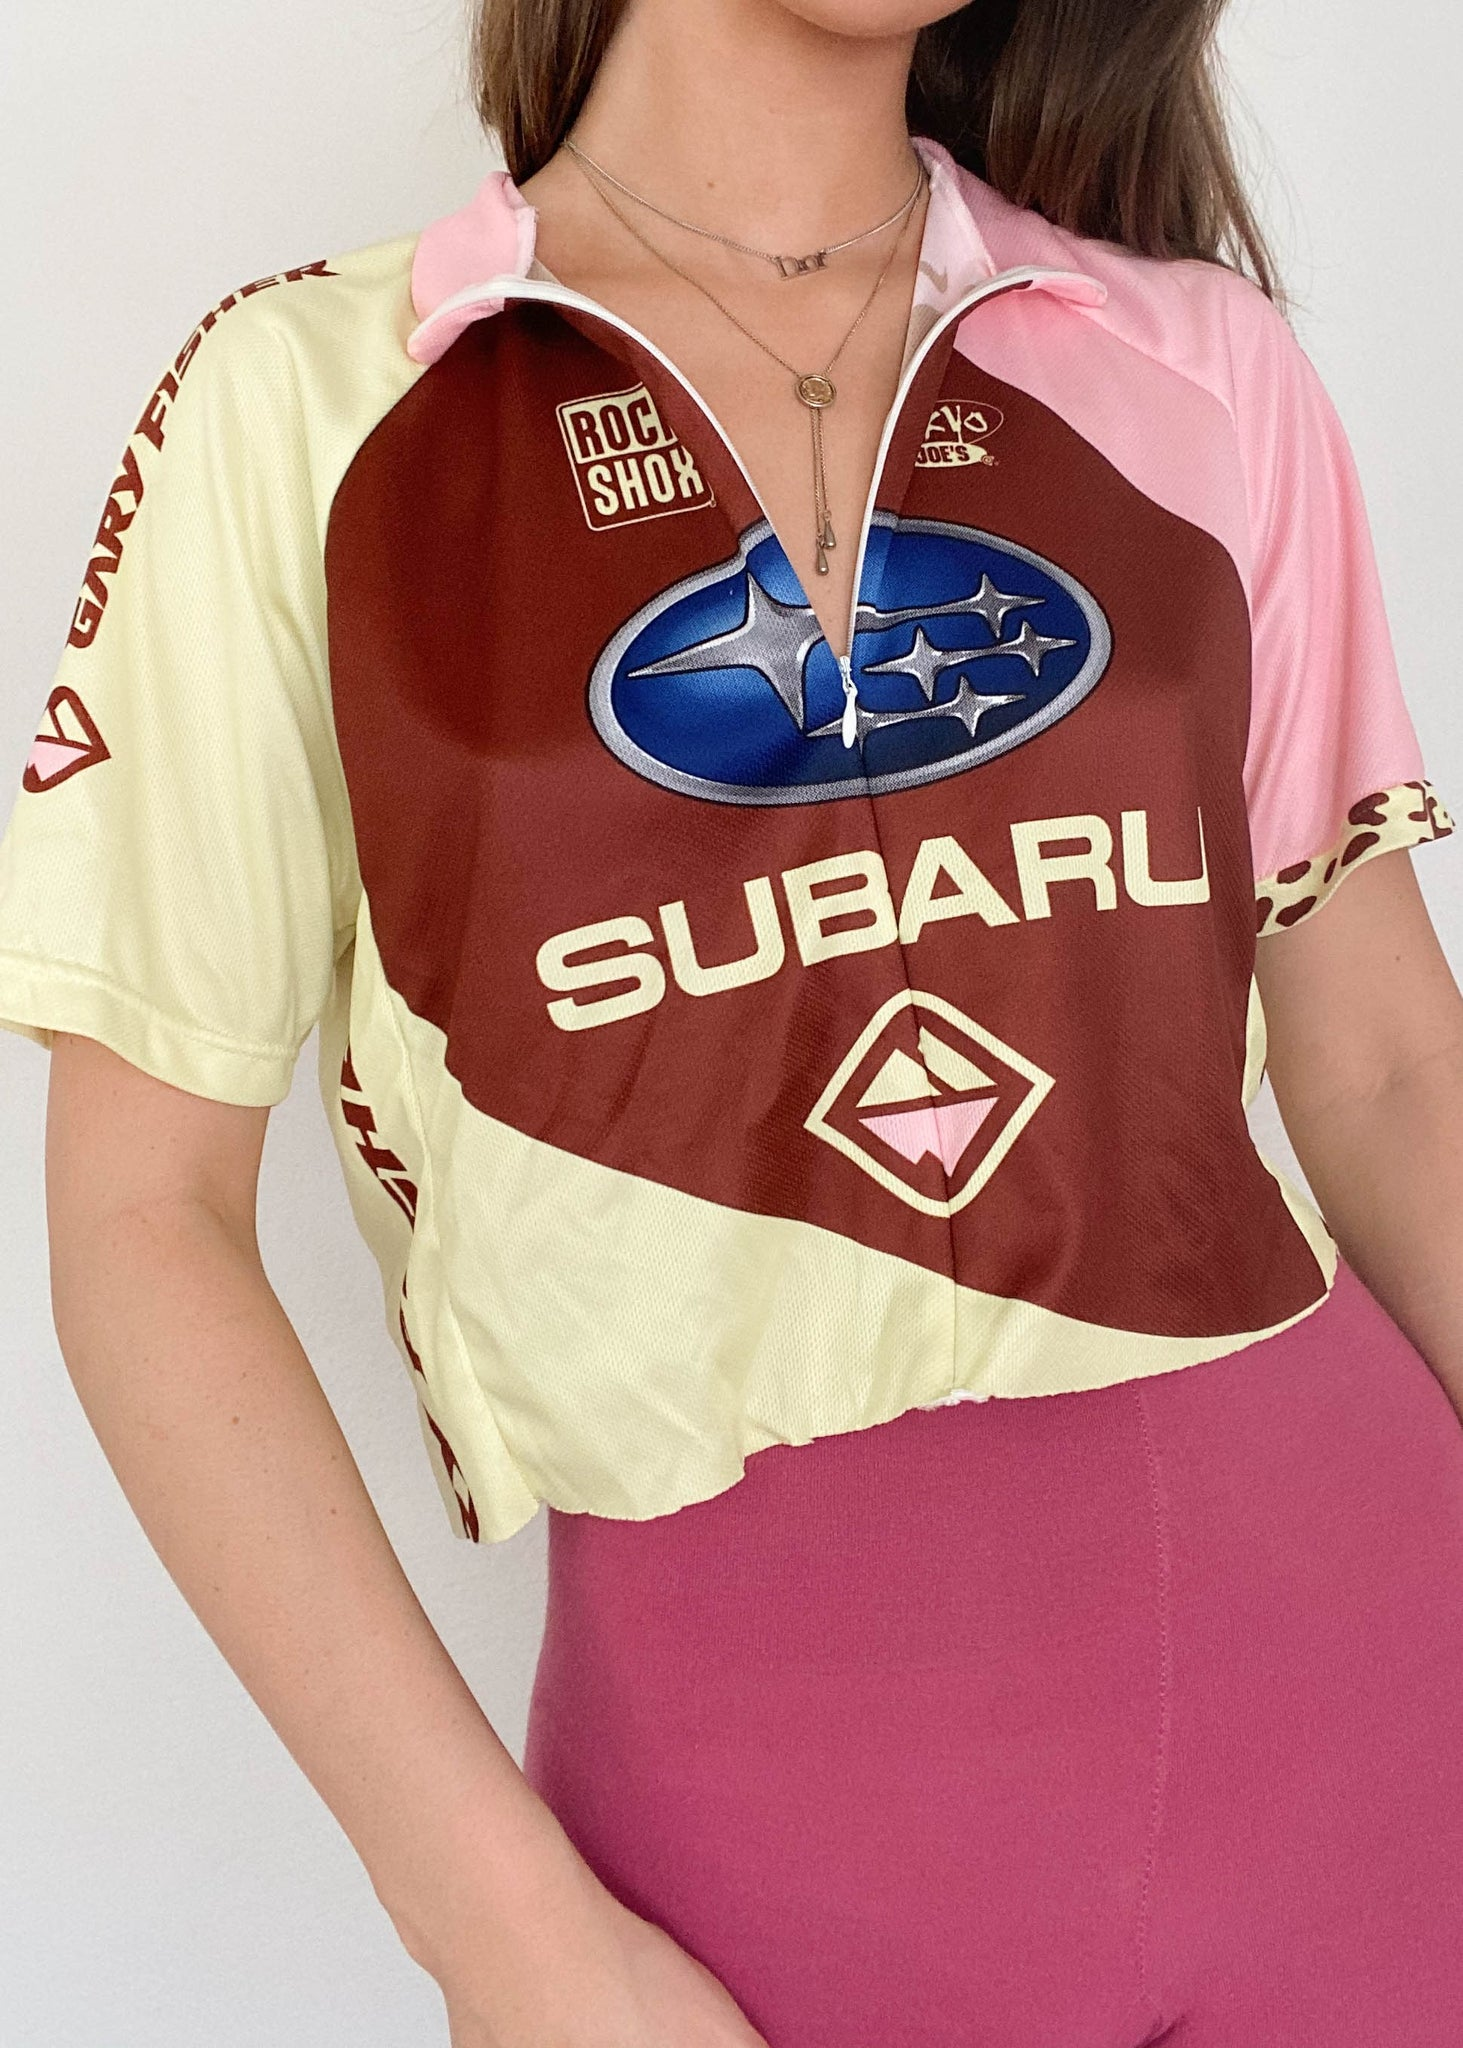 Subaru Cycling Jersey